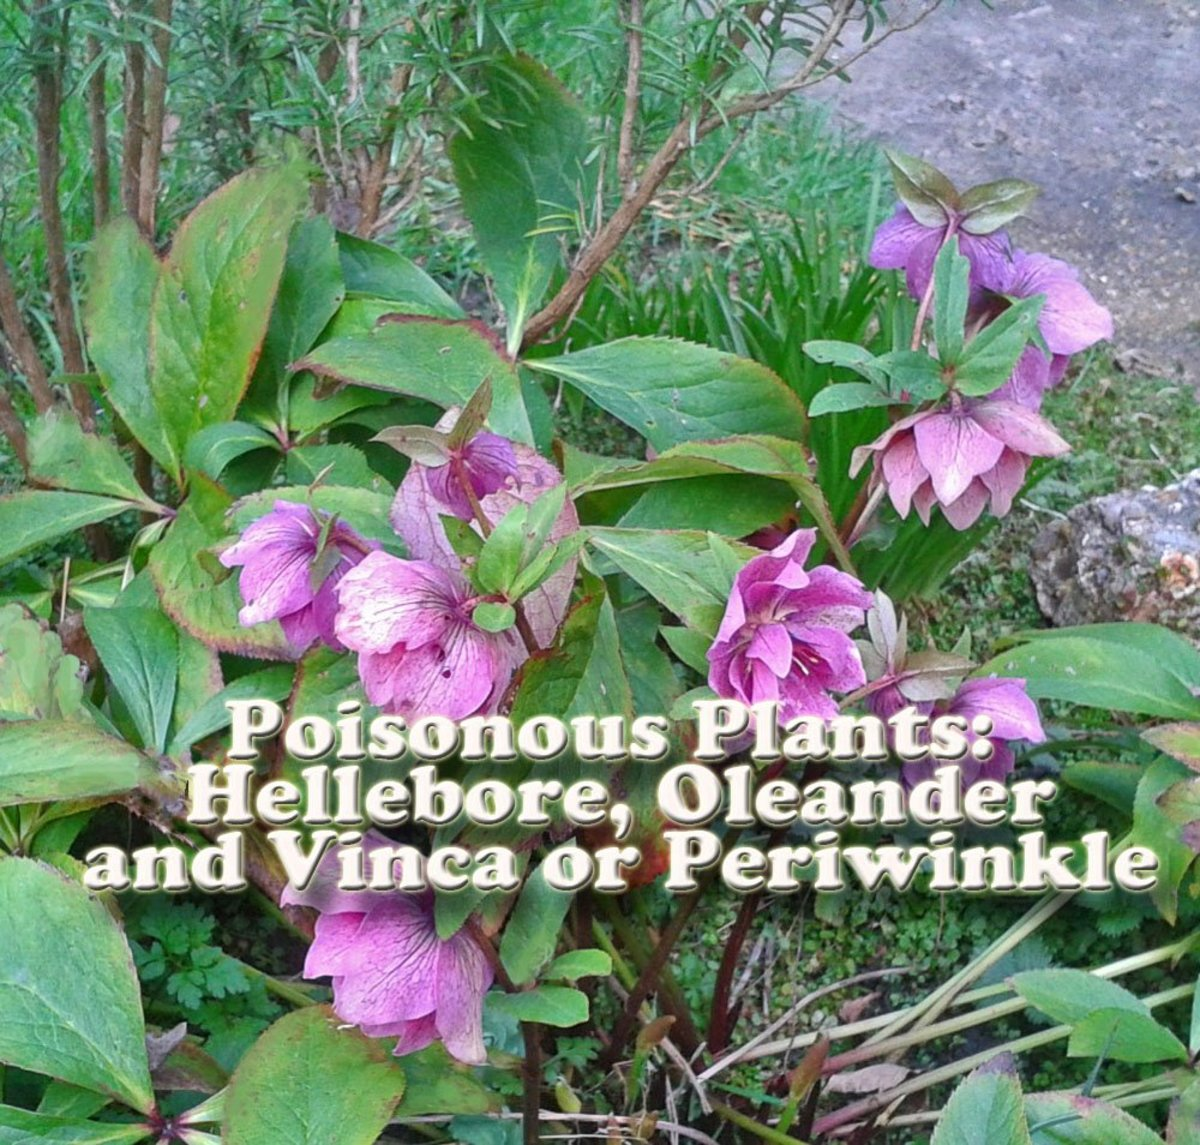 Poisonous Plants: Hellebore, Oleander and Vinca or Periwinkle